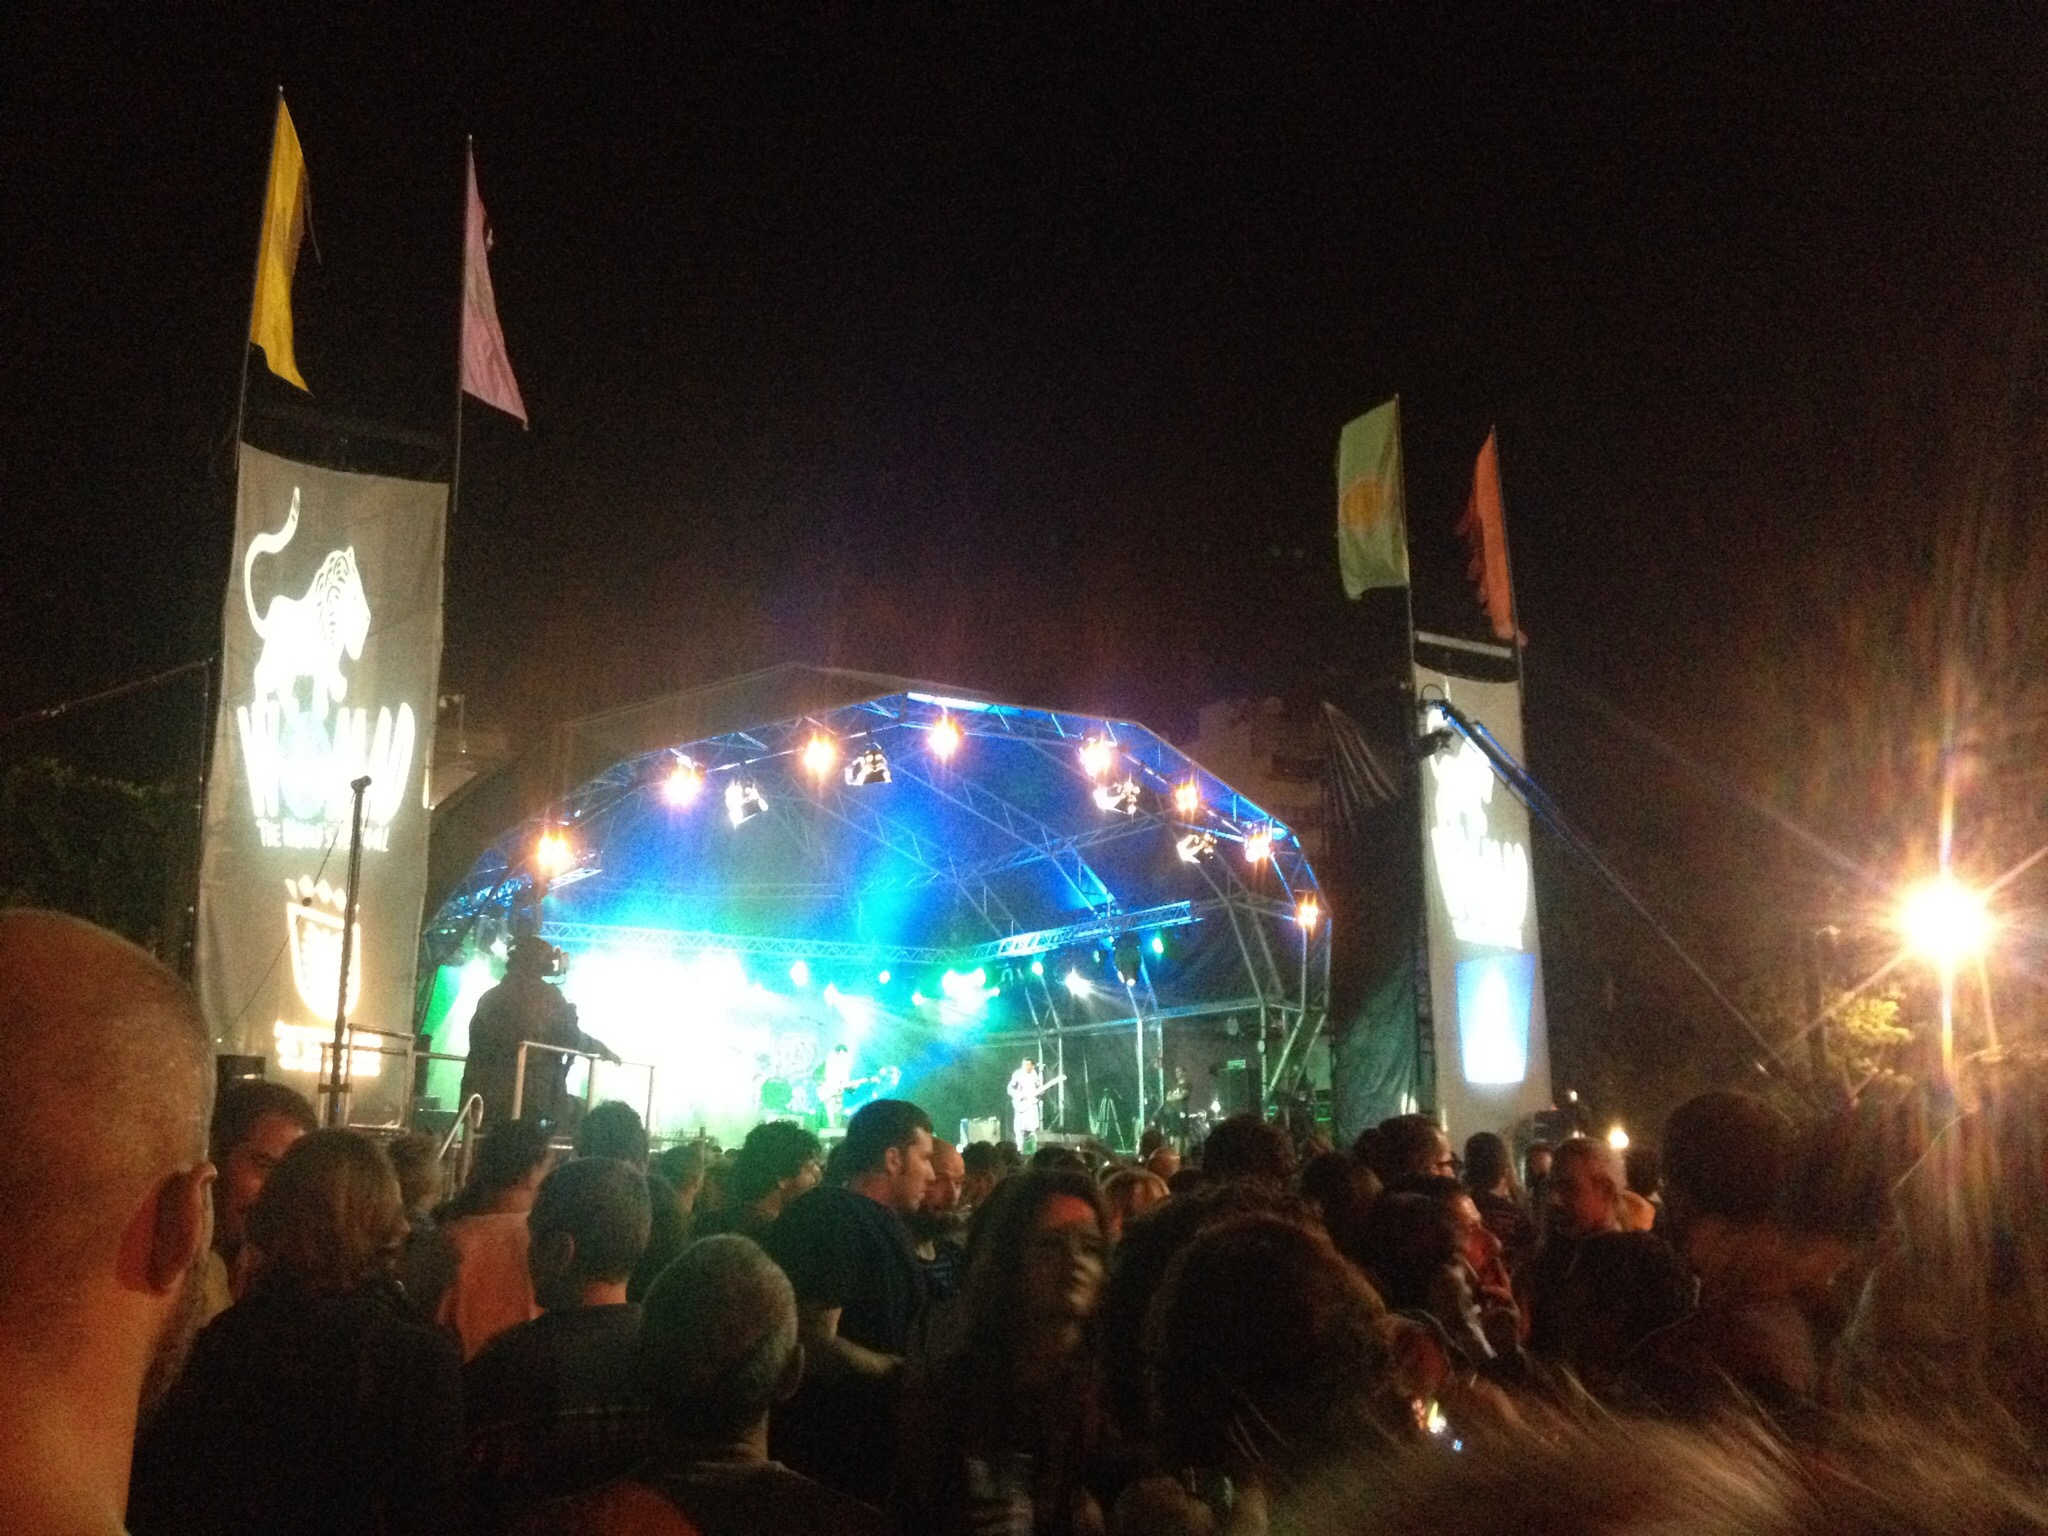 The Womad free music festival came through my first weekend, couldn't miss it!